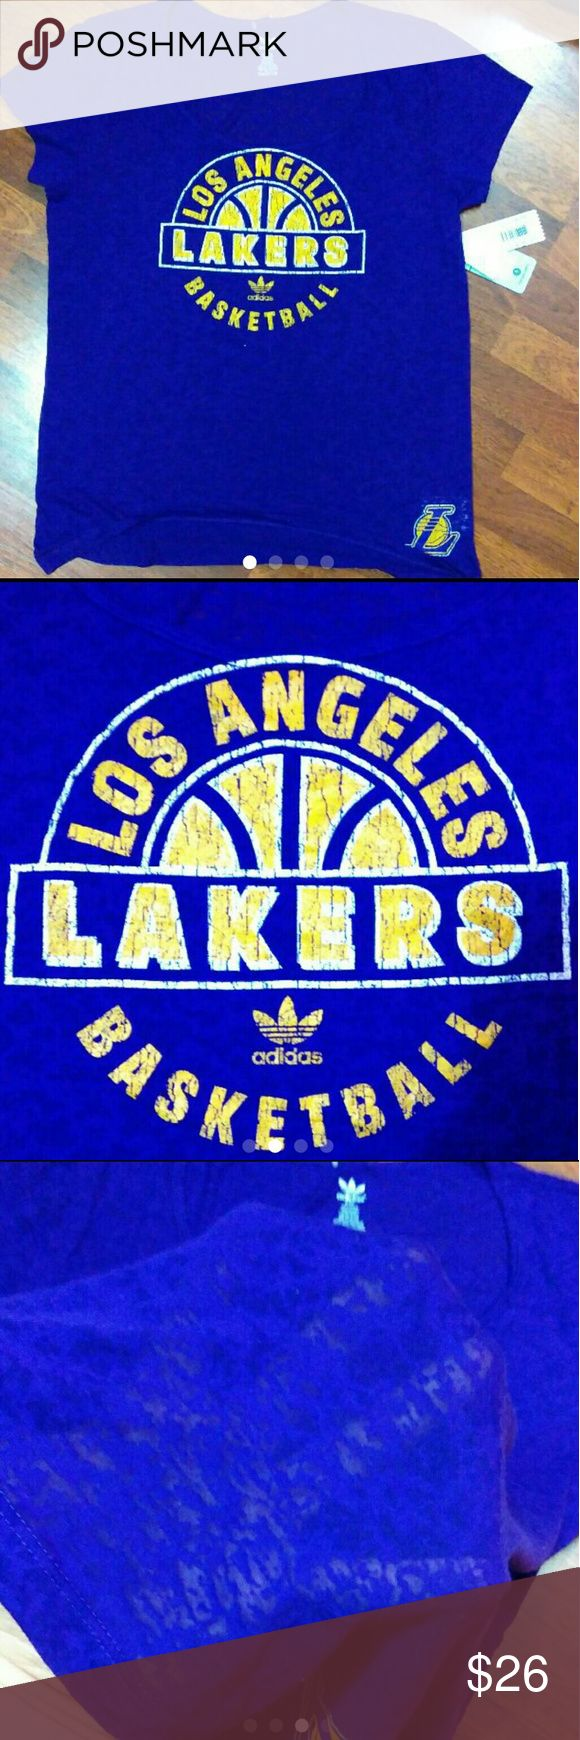 Los Angeles Lakers Tee Brand: Adidas  Size: 2x in women's pretty stretchy material  See through type of shirt (see picture 3)  NWT Bundles are welcome  Ships next day  Los Angeles Lakers  Shirt is a purple NOT A BLUE   Selling on M E R C A R I - SHIPPING IS ON ME Adidas Tops Tees - Short Sleeve